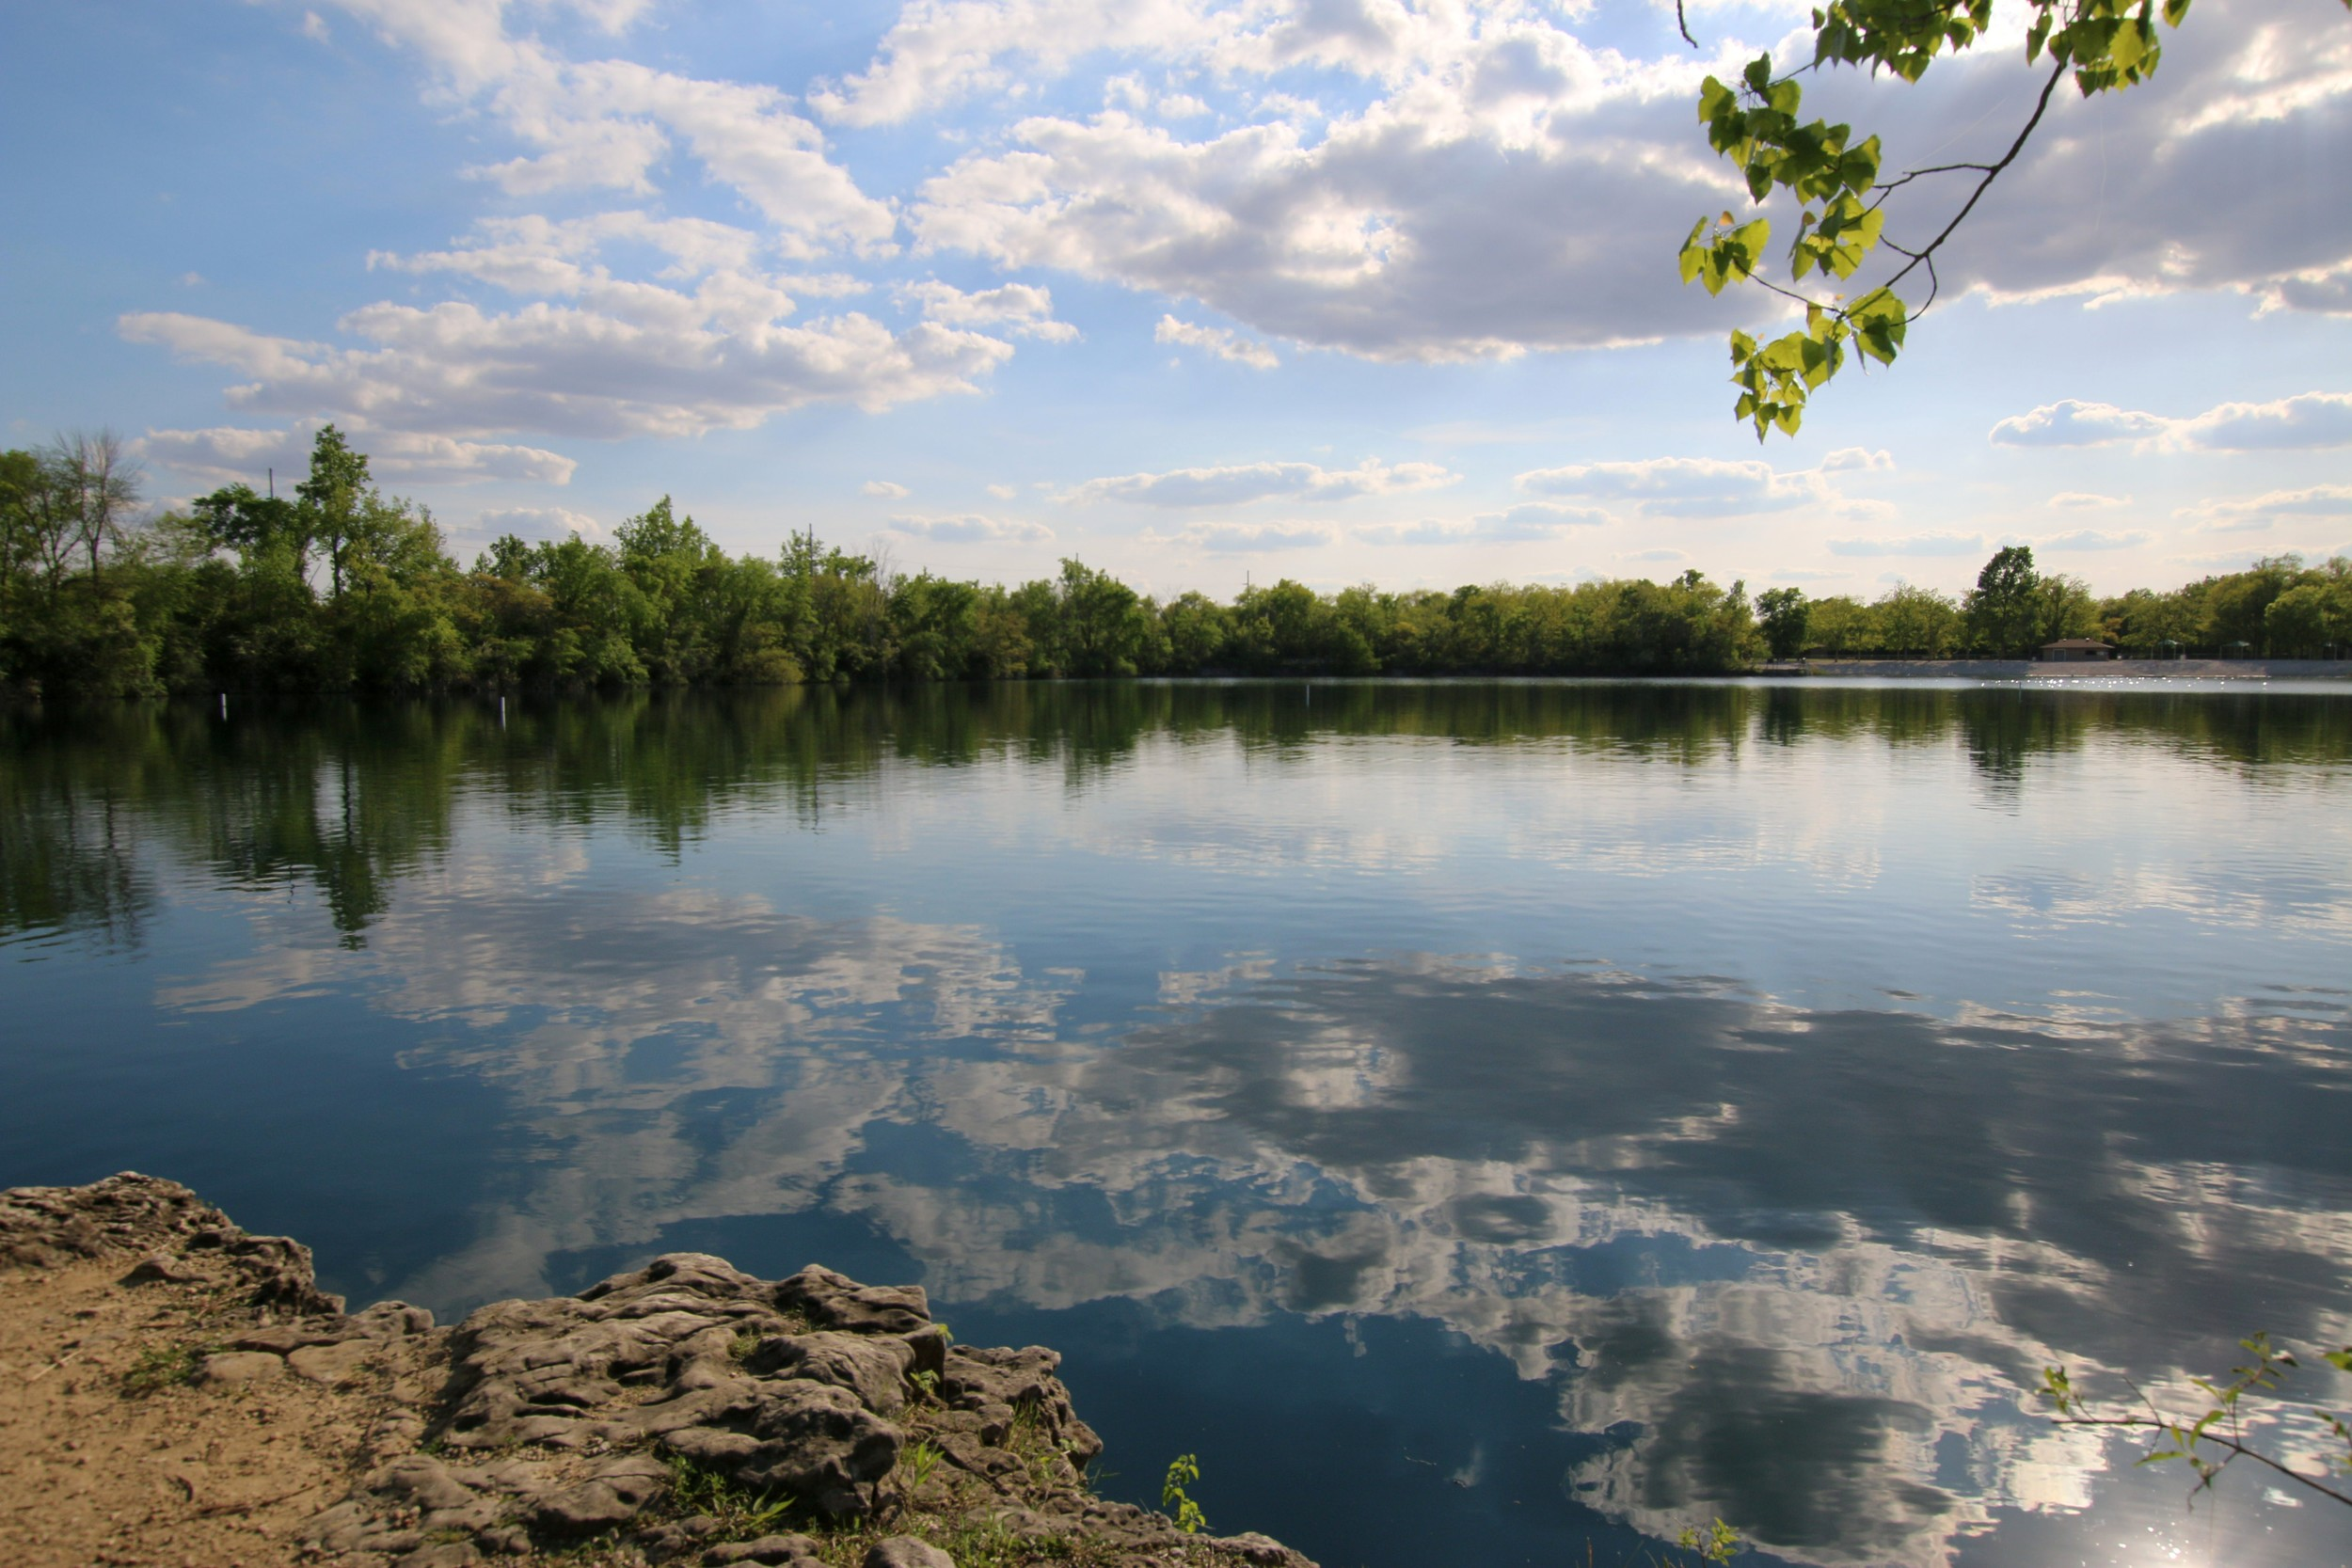 Calm waters on the quarry + sunny skies